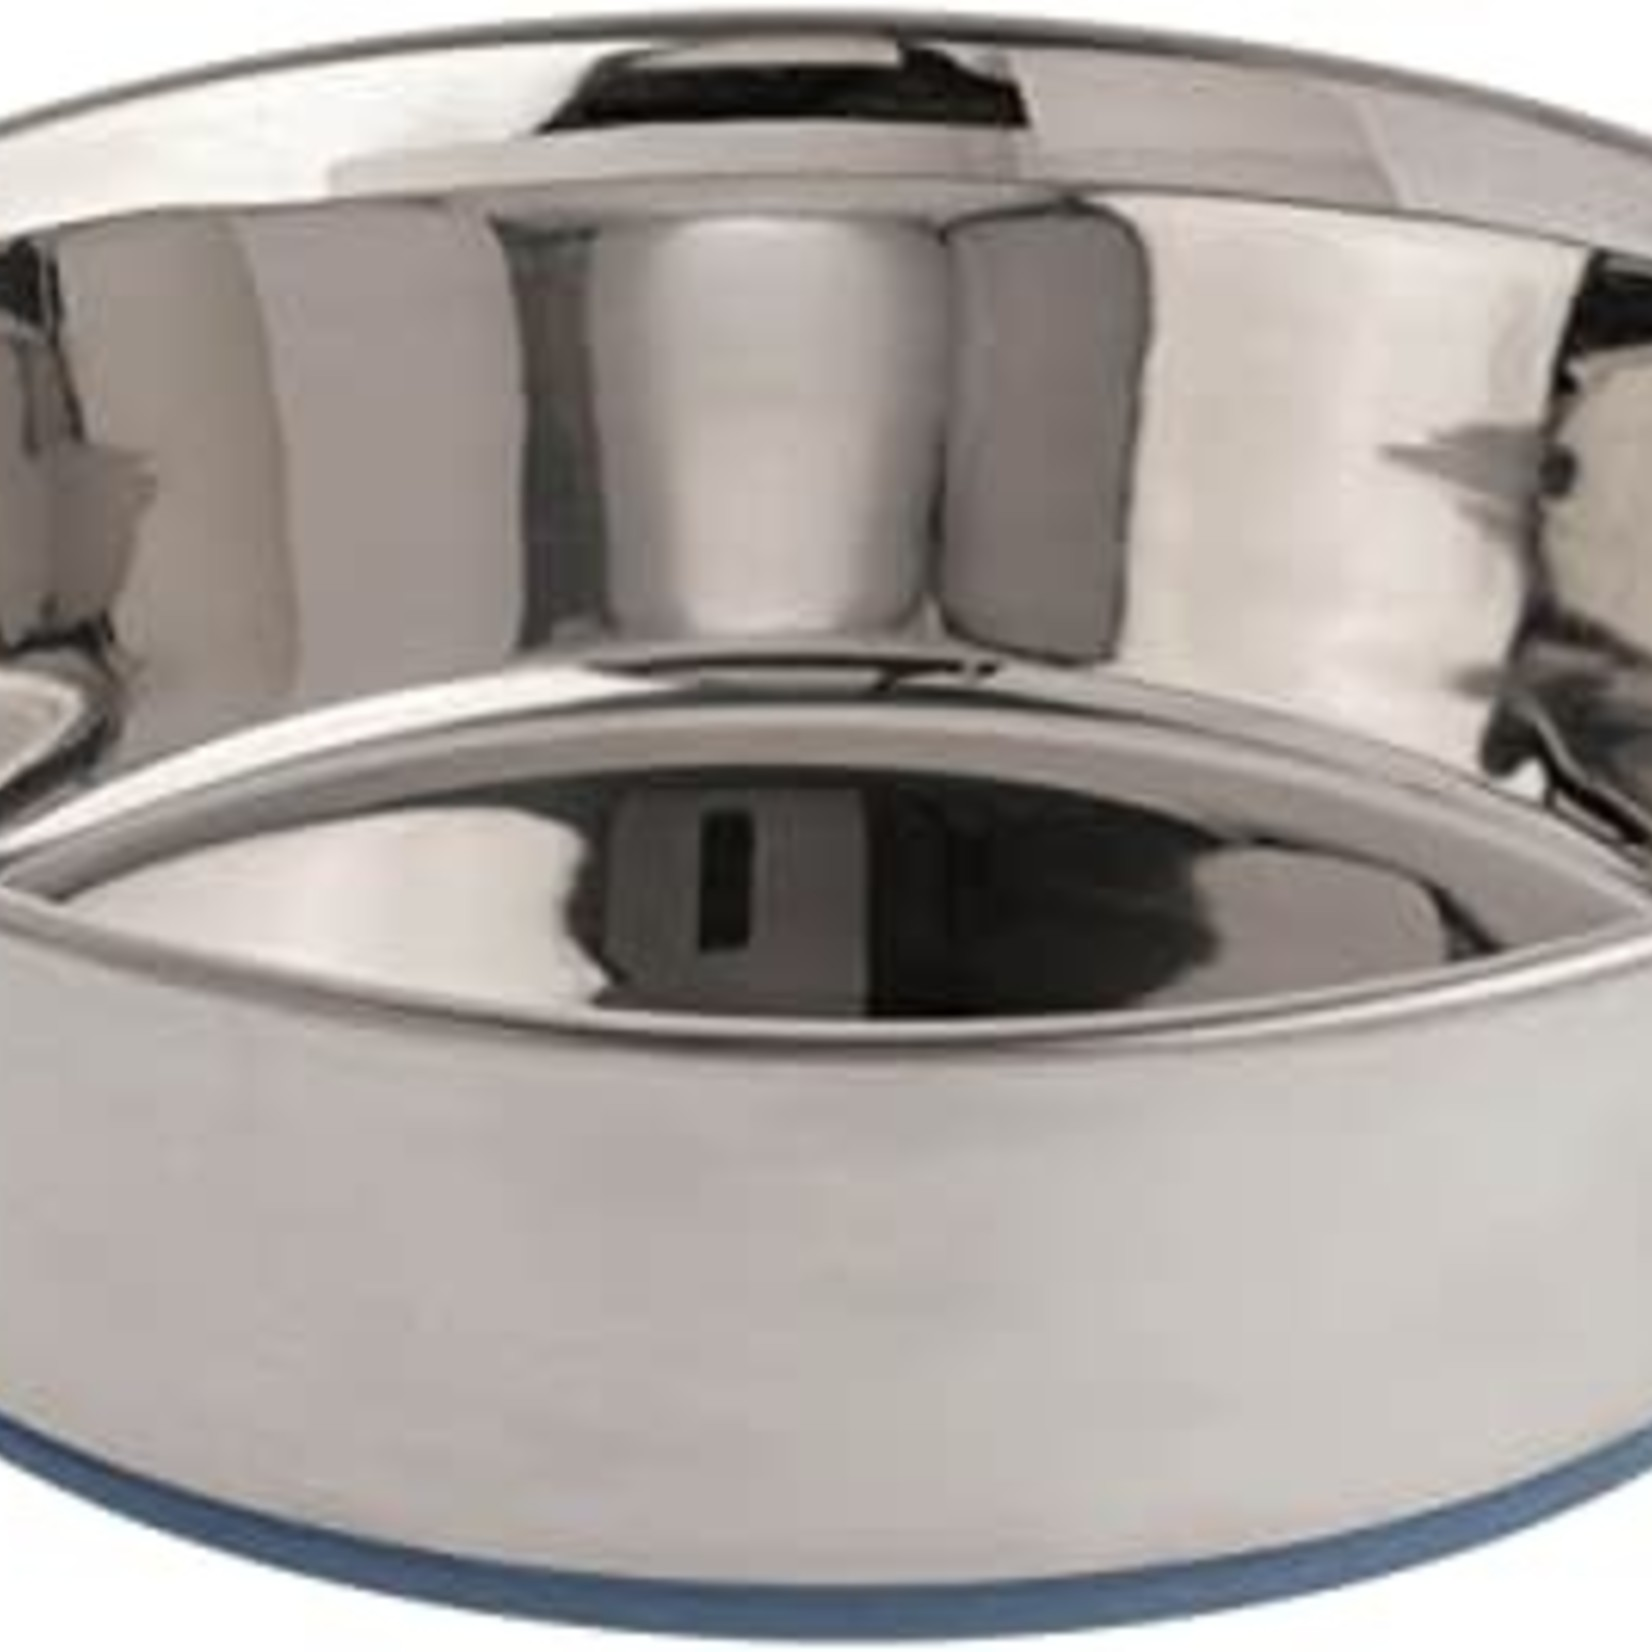 Our Pets Company Durapet Stainless Steel Bowl 4.5 Quart